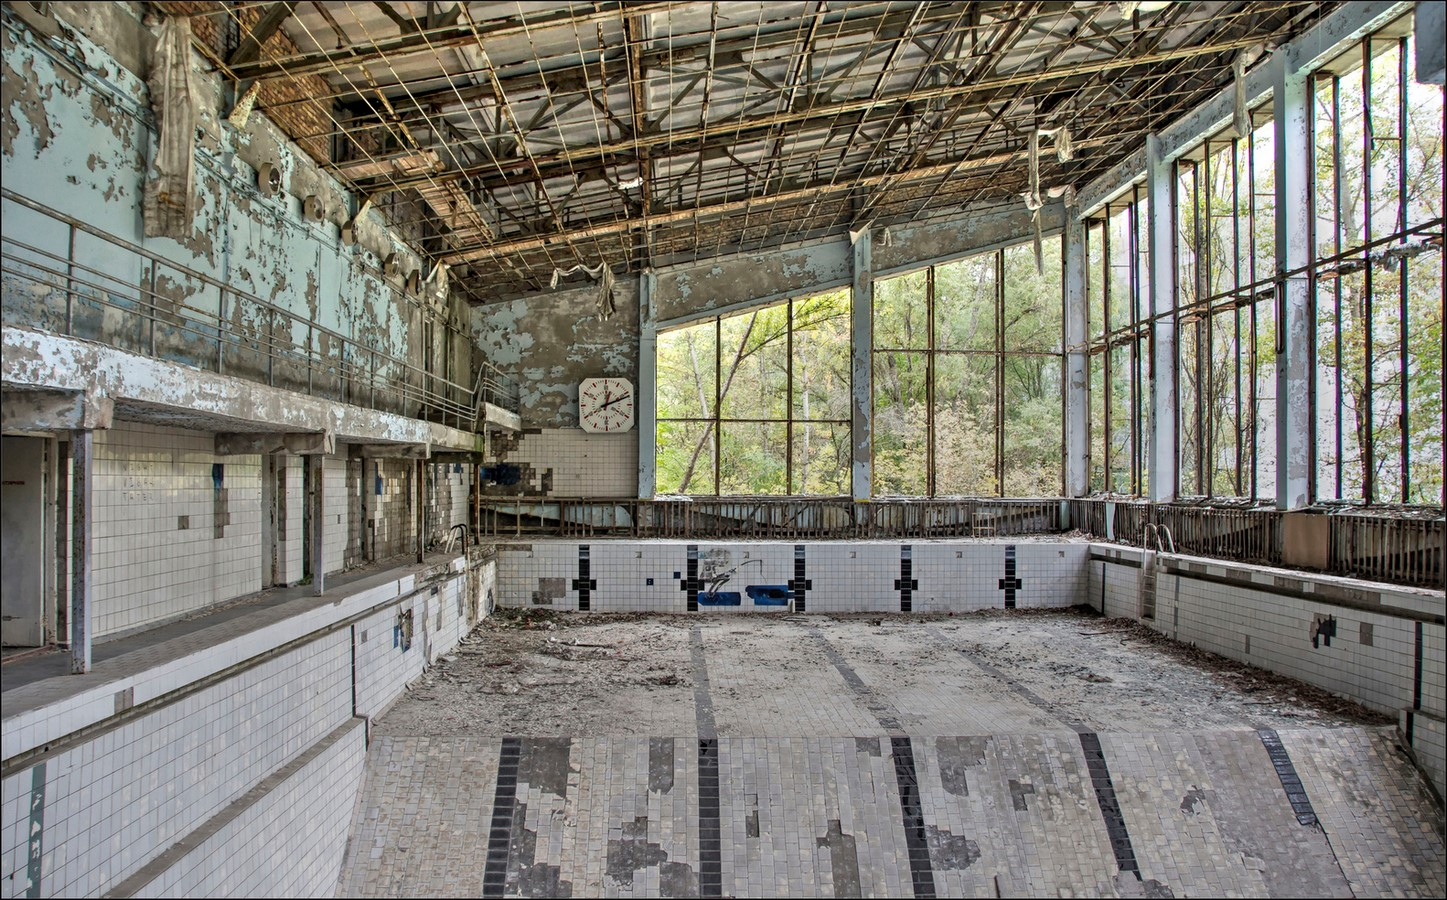 Chernobyl: What remains of the place? - Sheet7